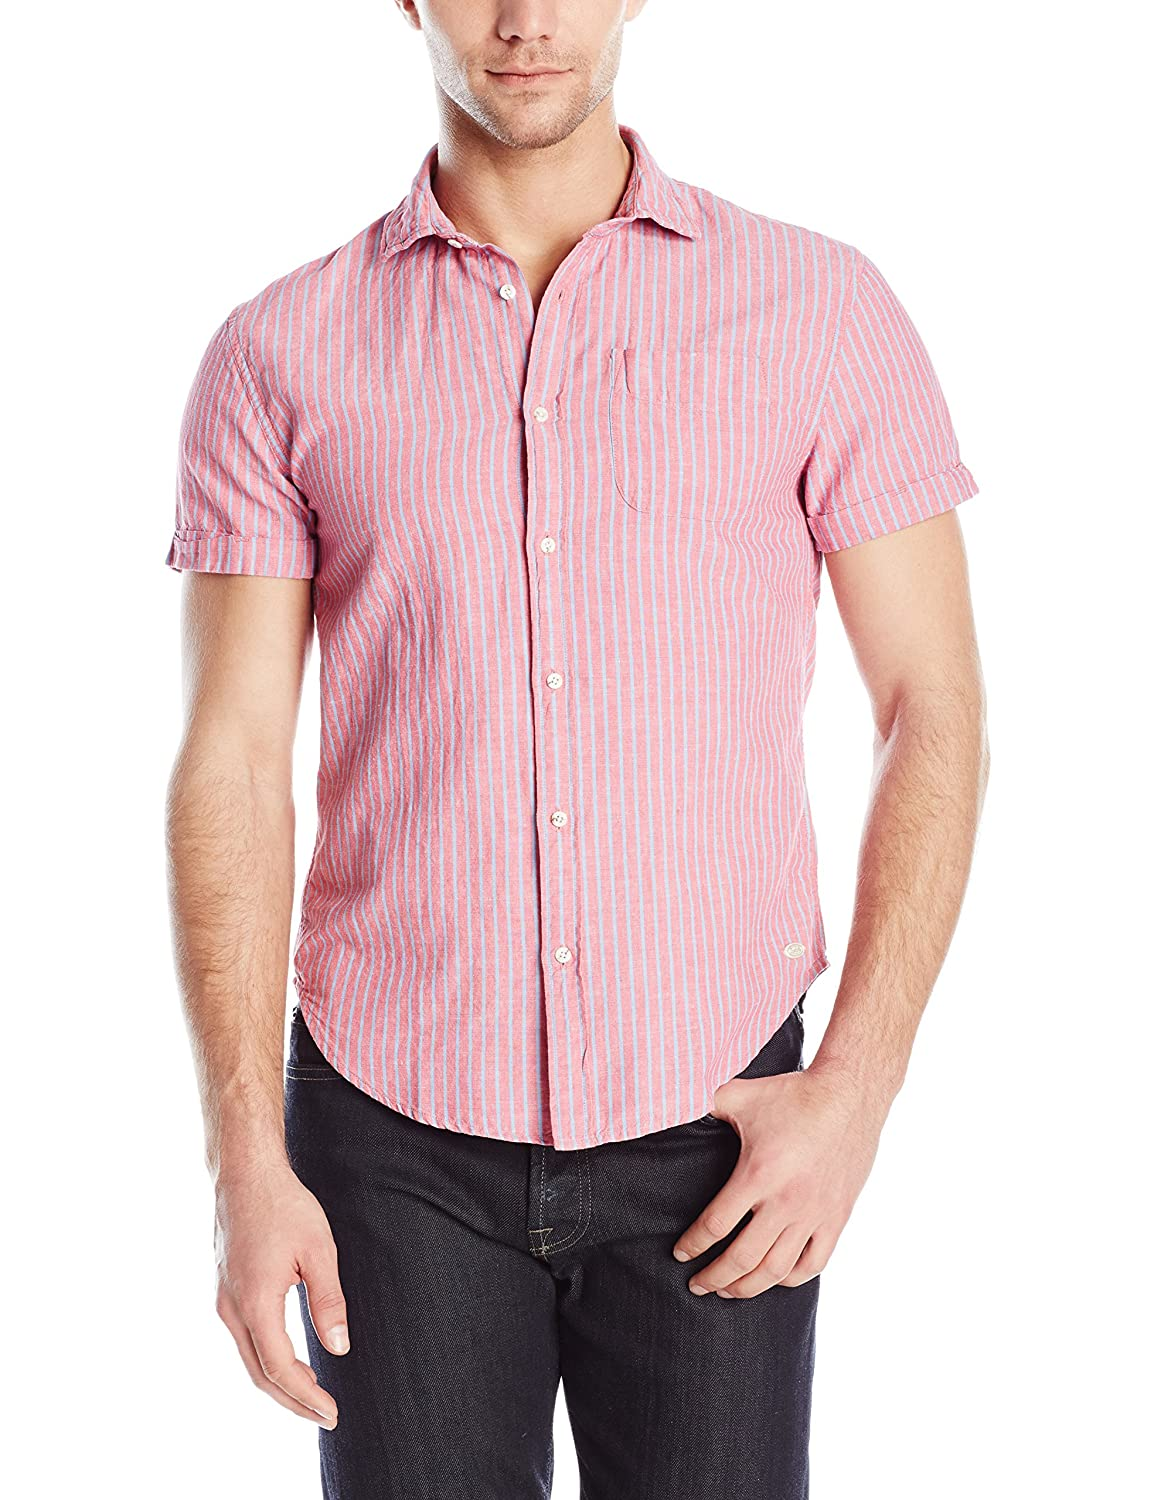 Scotch & Soda Men's Relaxed Short-Sleeve Shirt